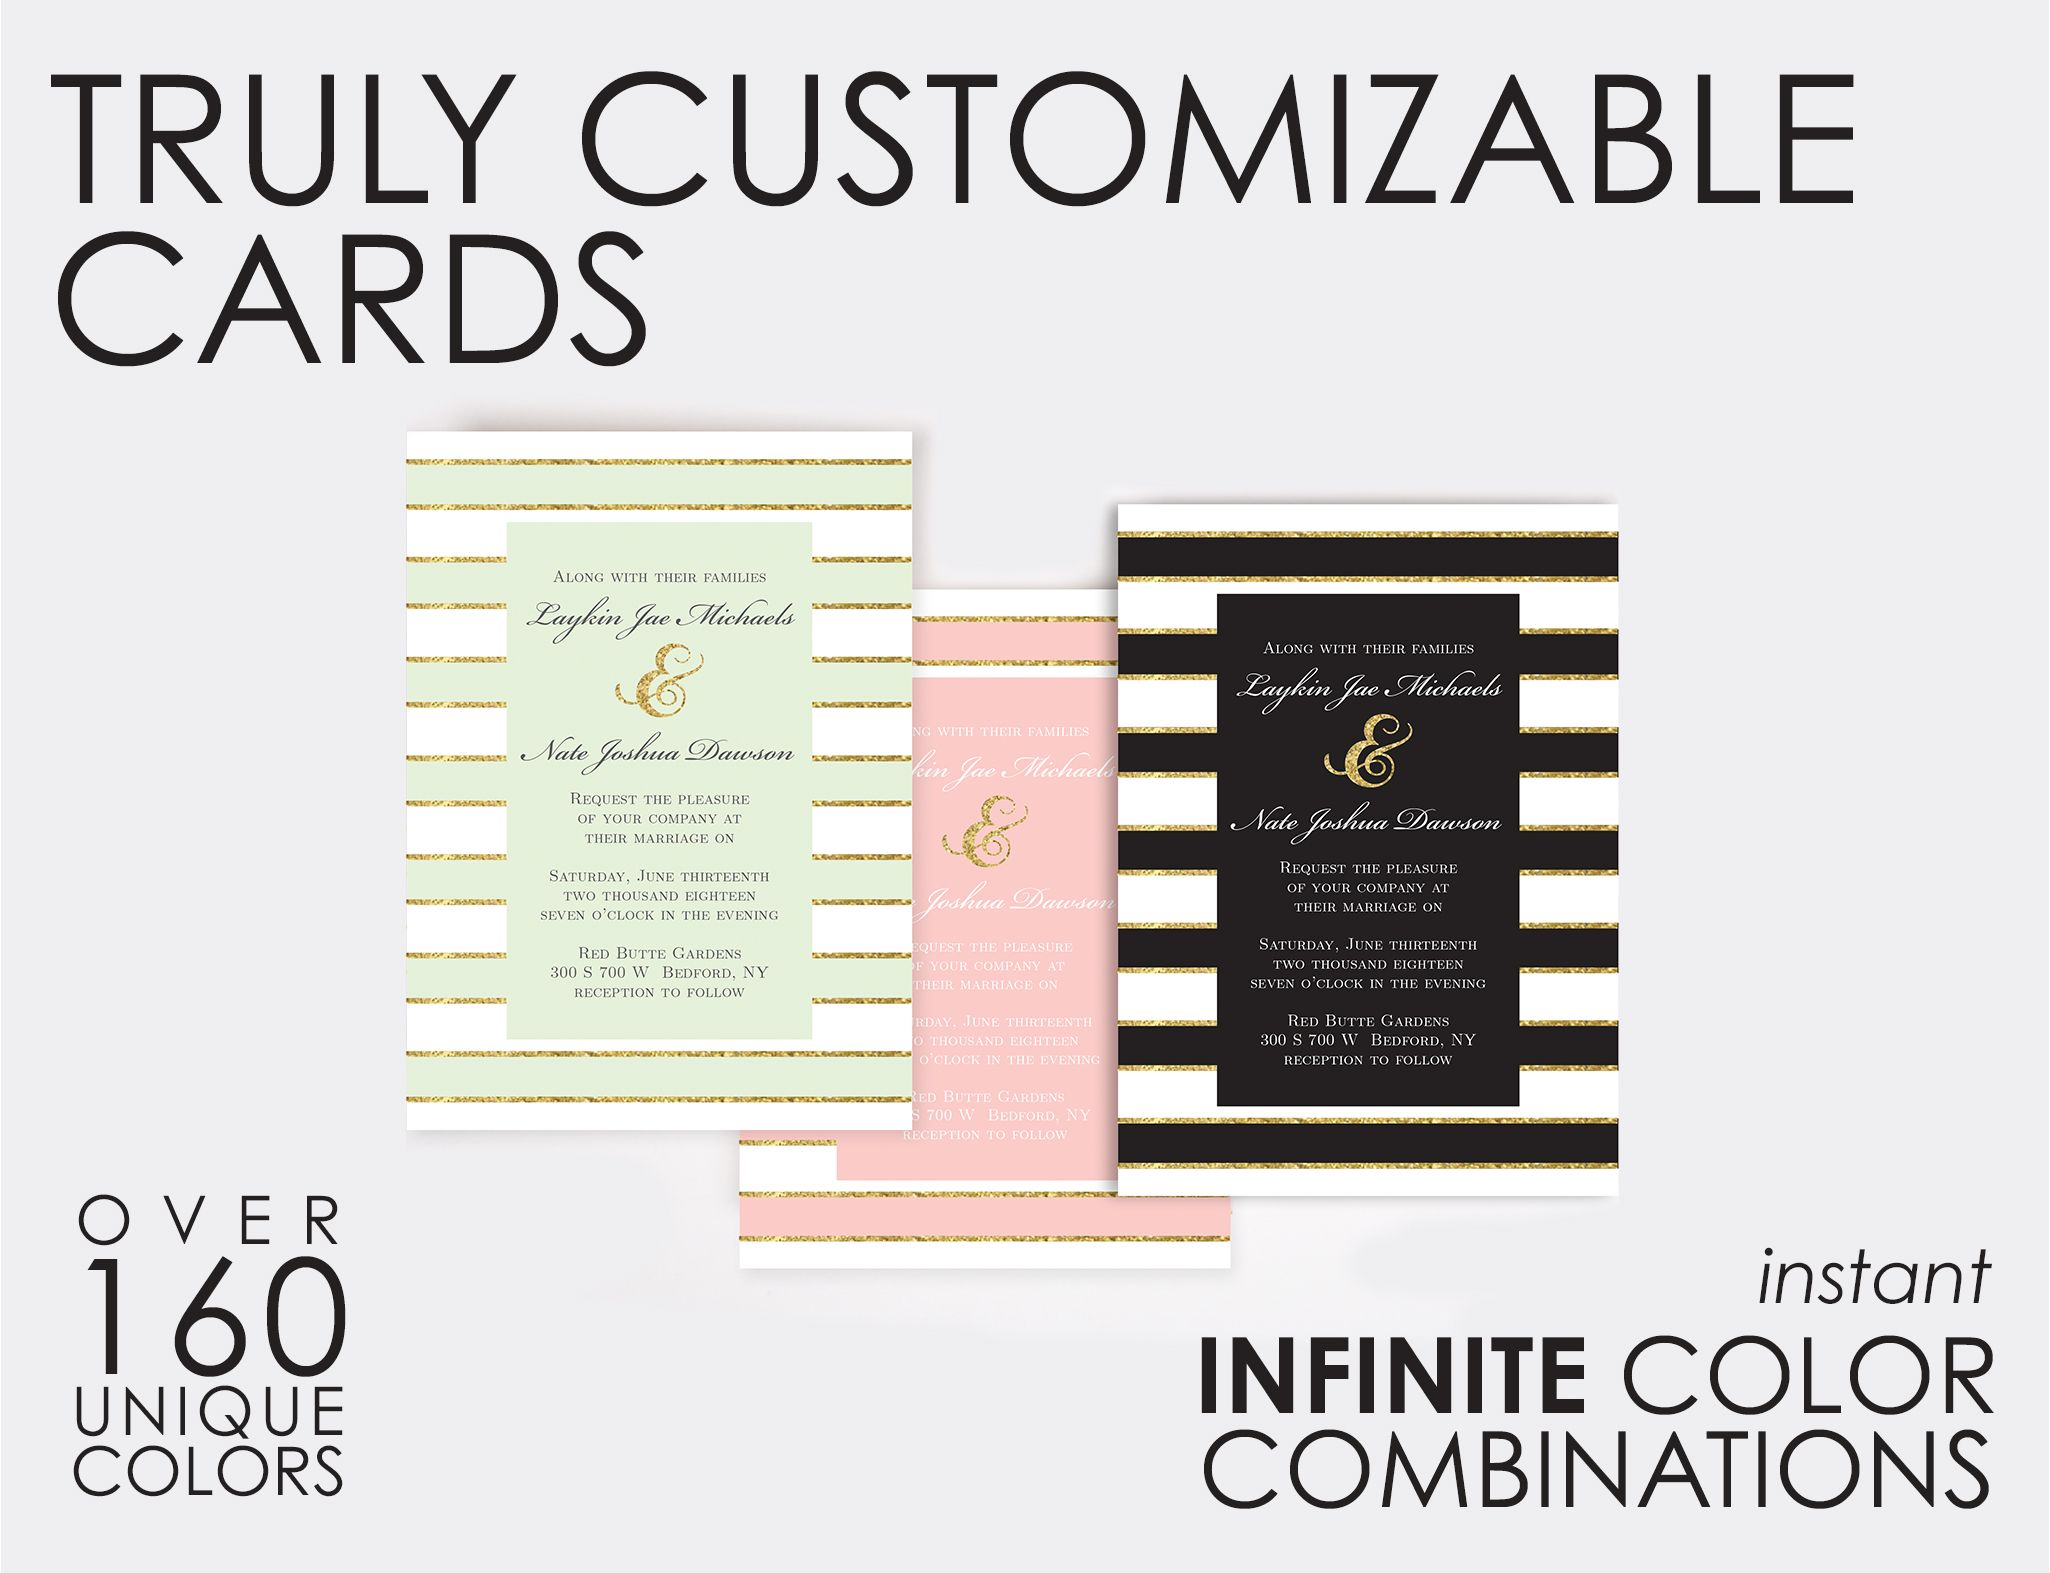 Truly Custom Wedding Invitations.  Over 160 Color Choices.